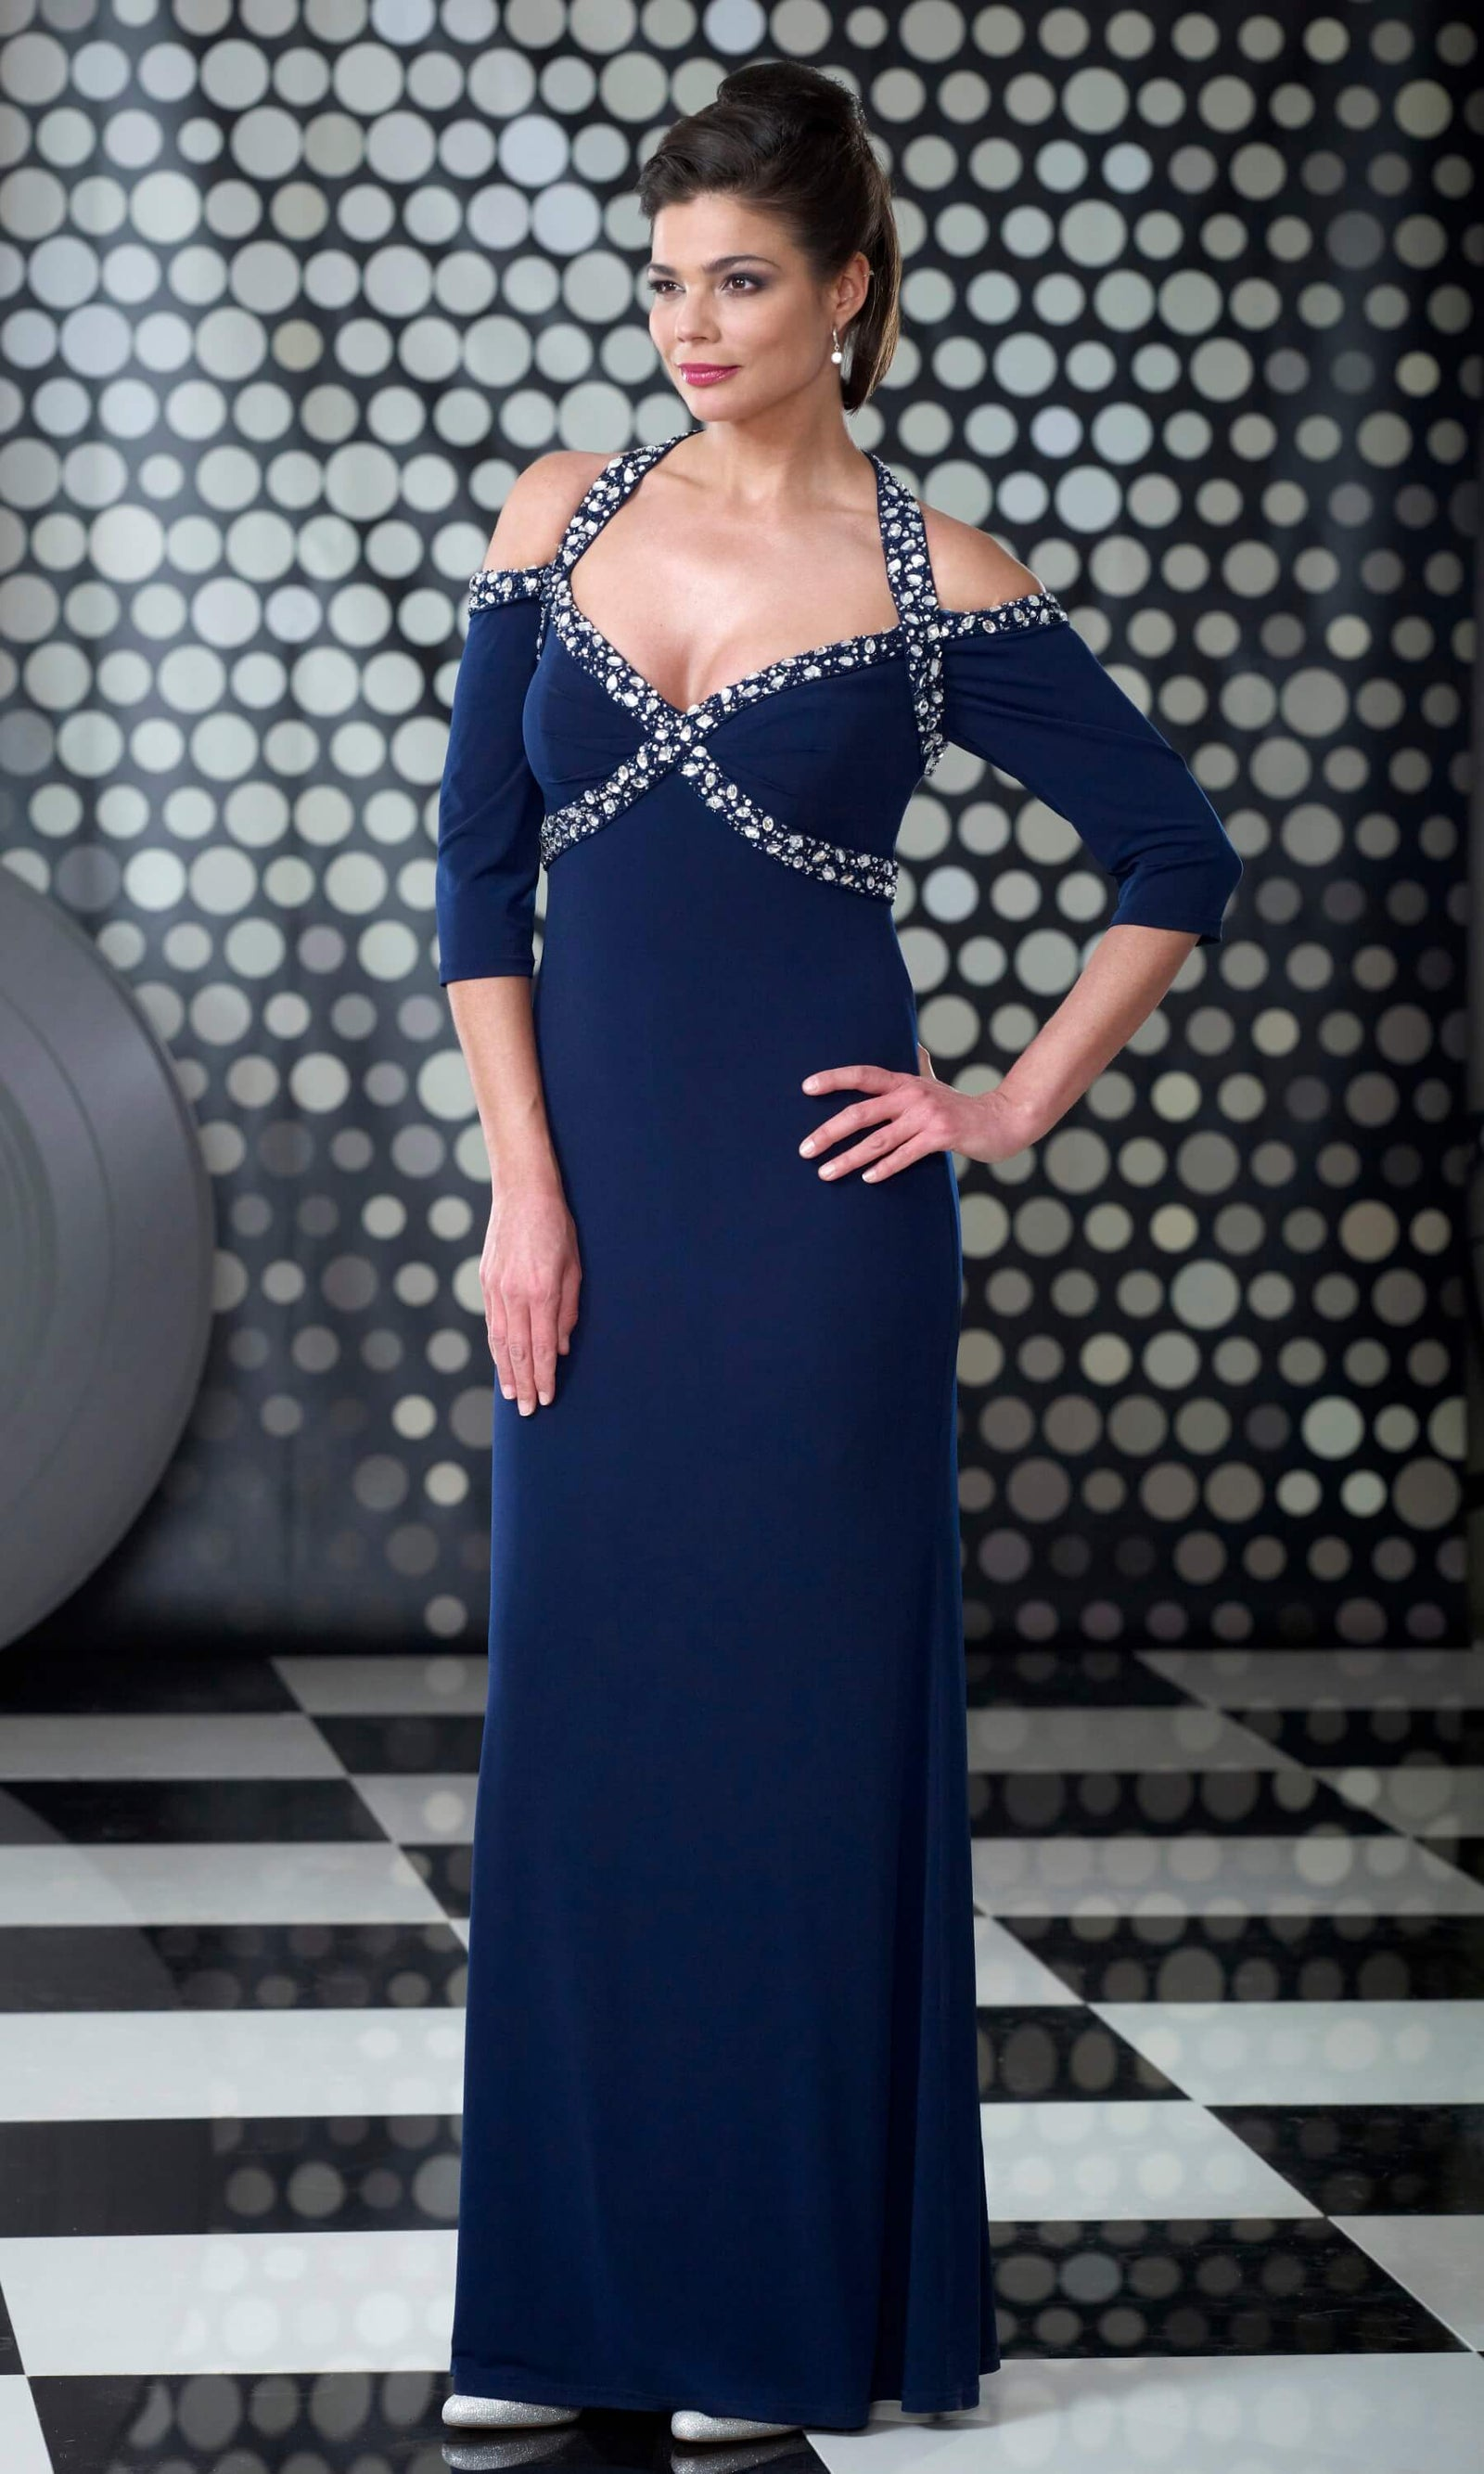 VO3014 Navy Veromia Occasions Cold Shoulder Evening Dress - Fab Frocks